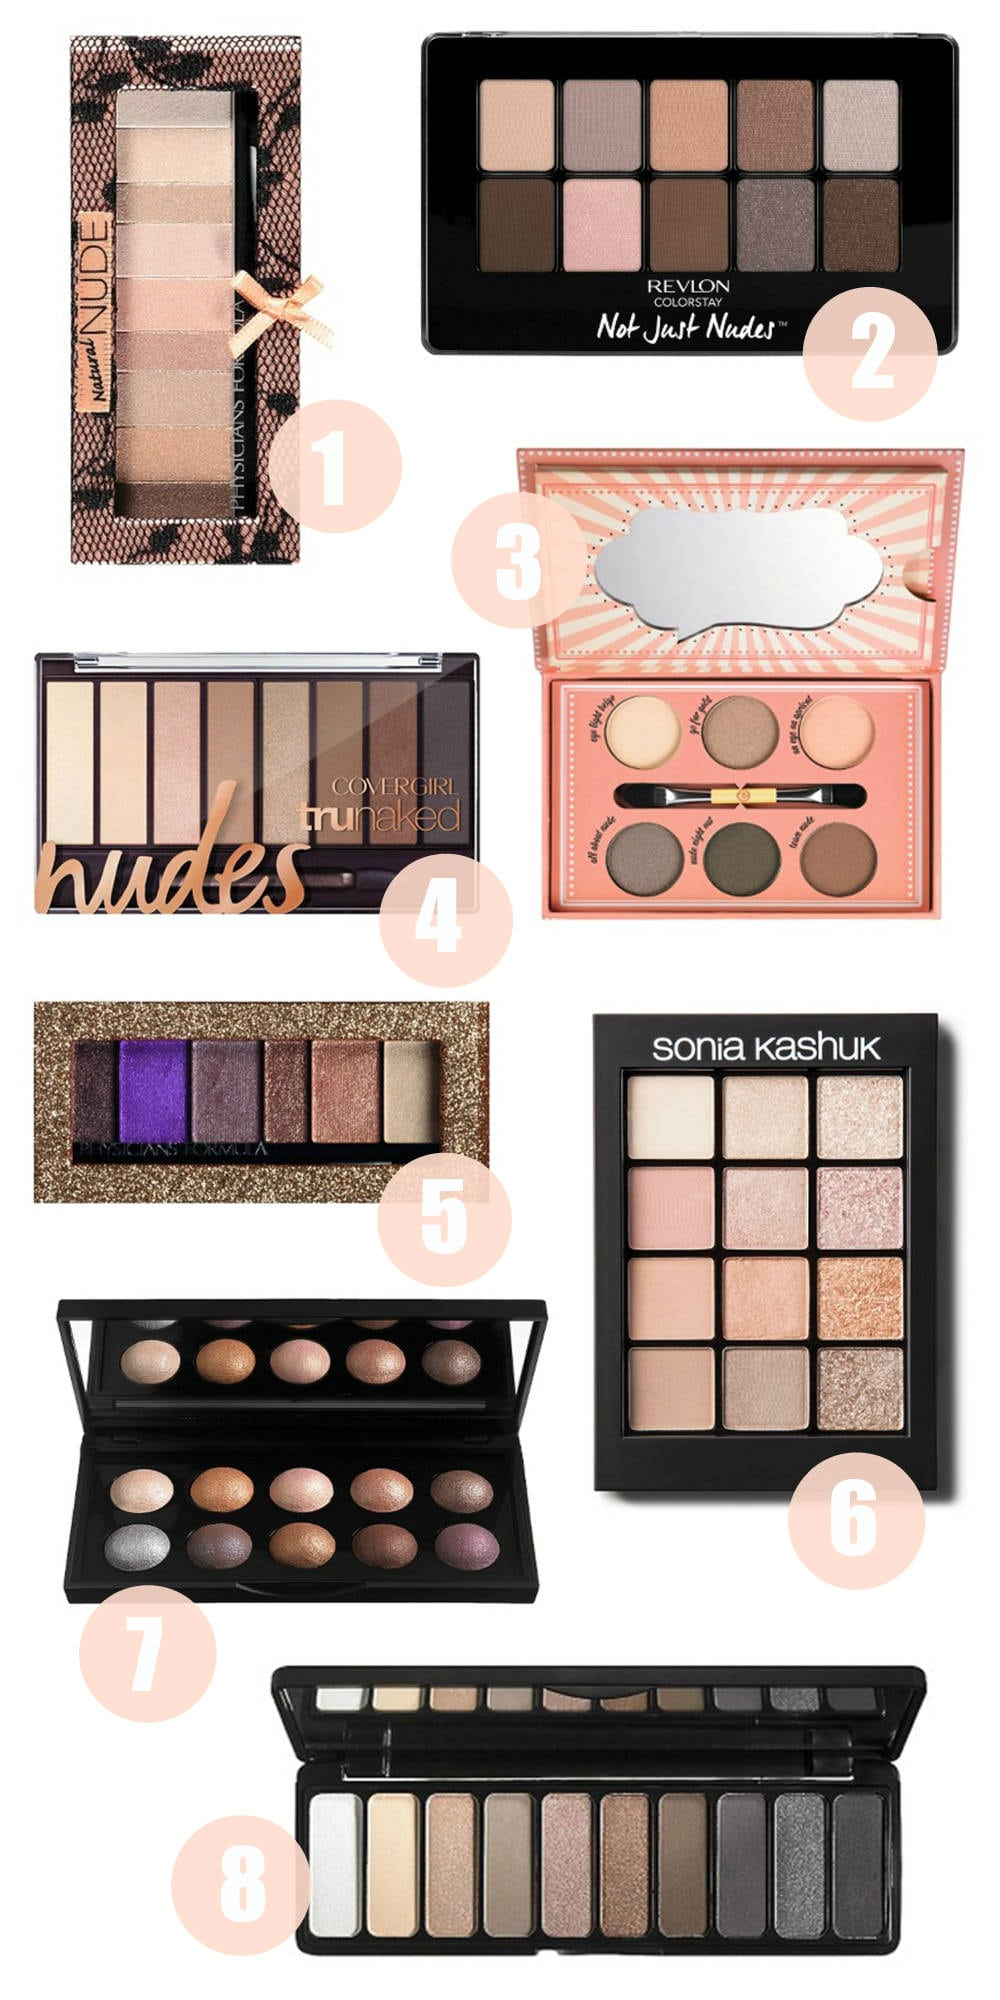 Beauty blogger Mash Elle shares her favorite drugstore eyeshadow palettes under $20